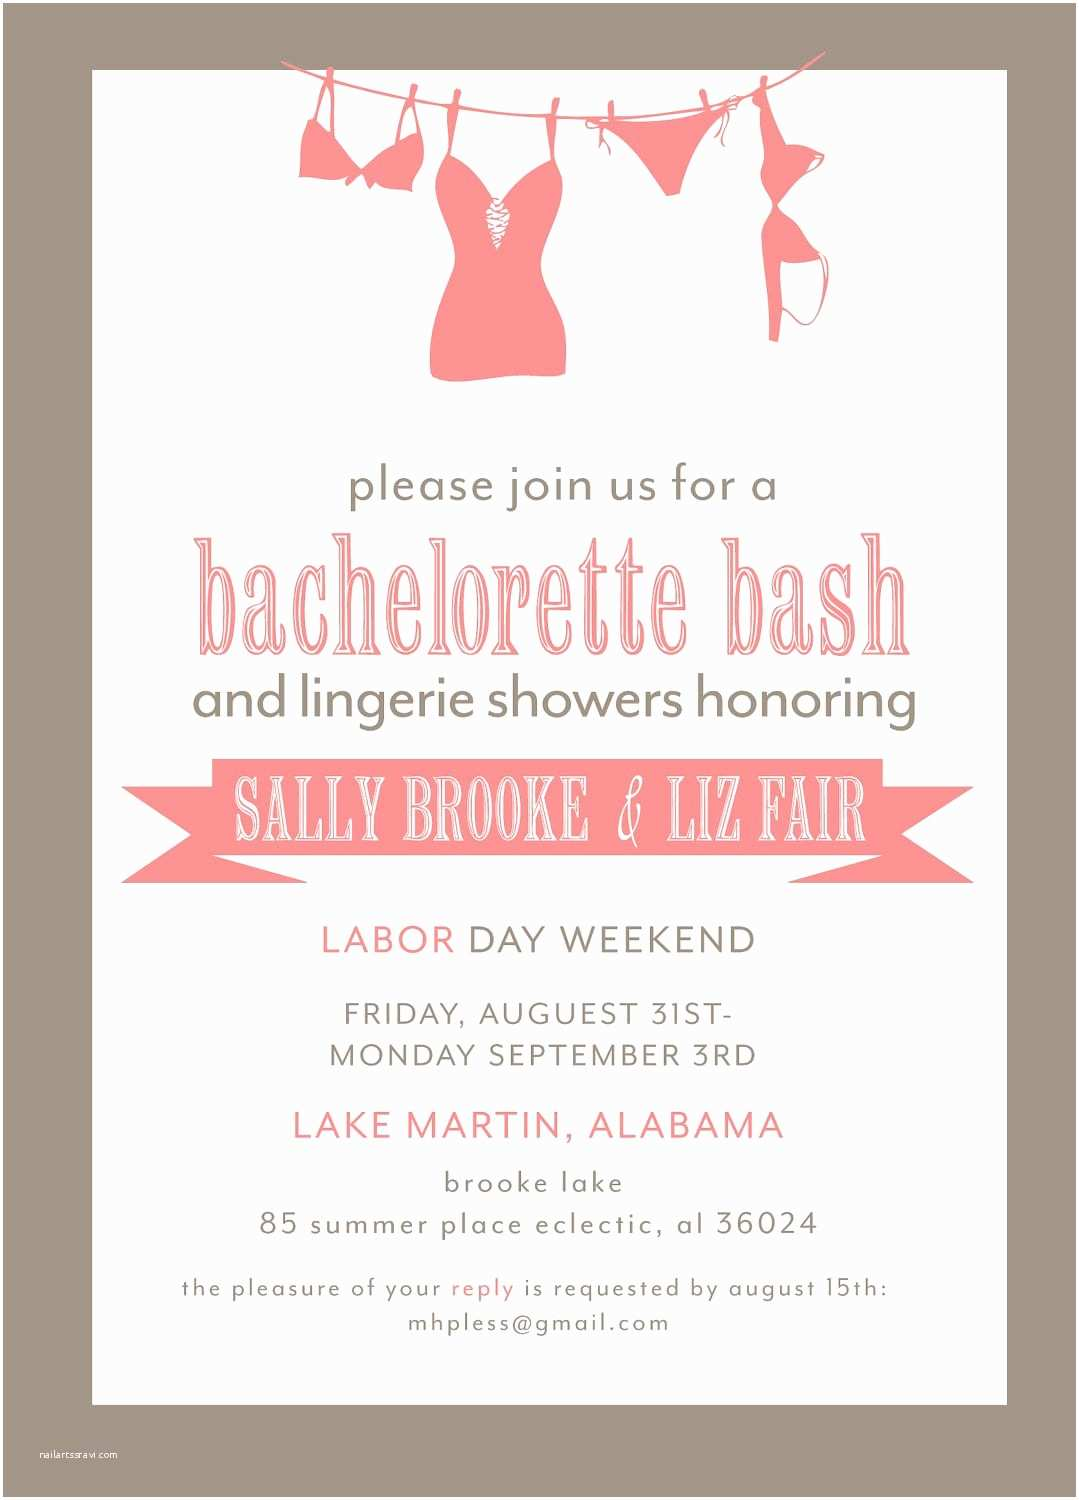 Bachelorette Weekend Invitations Bachelorette Party Weekend Invitations Mickey Mouse